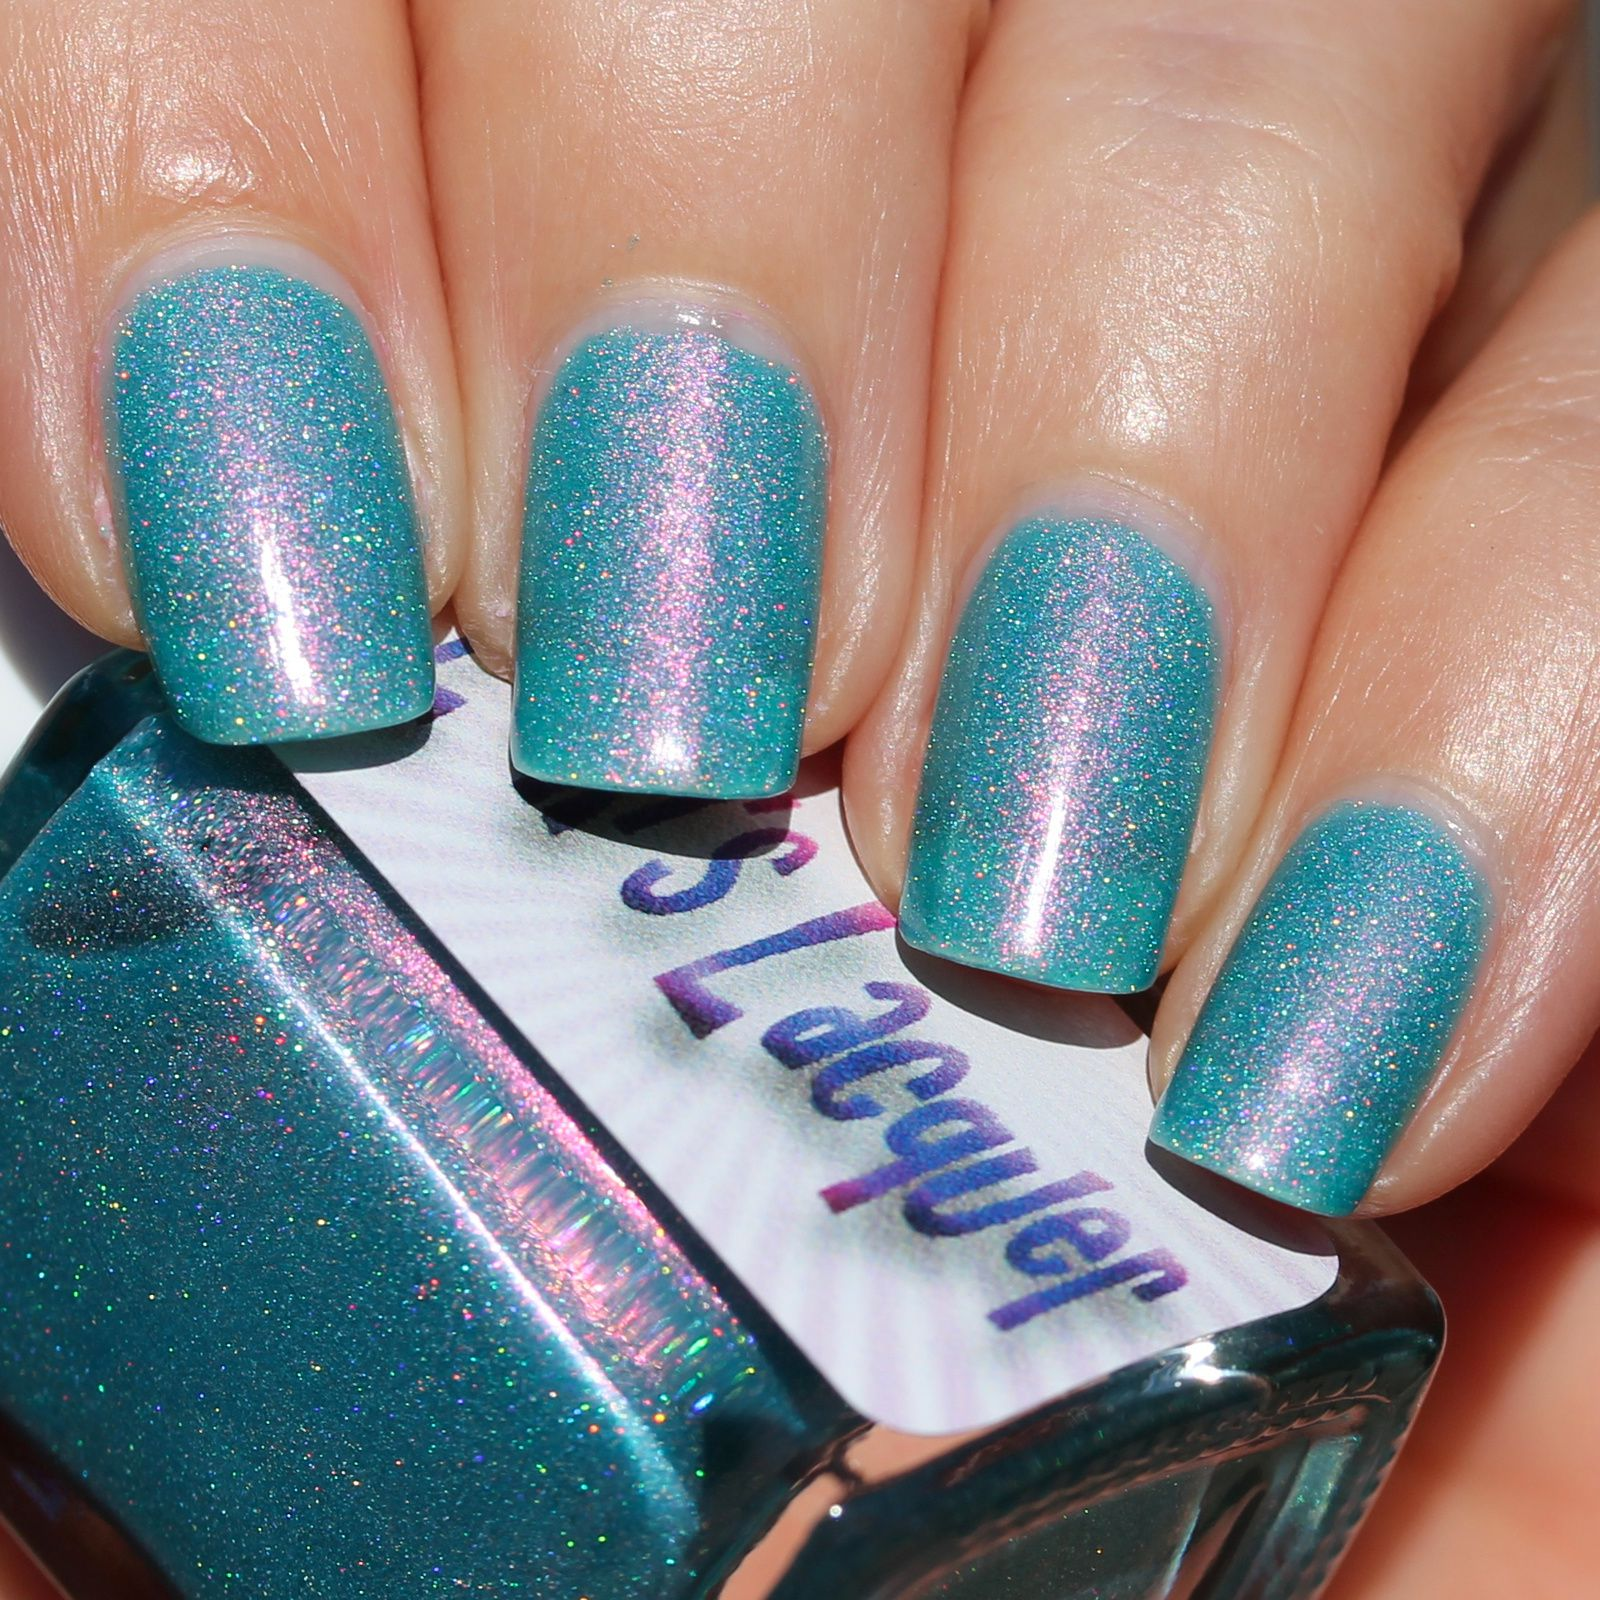 Sally Hansen Complete Care 4-in-1 Extra Moisturizing Nail Treatment / Loki's Lacquer The Diva Dance / Sally Hansen Miracle Gel Top Coat